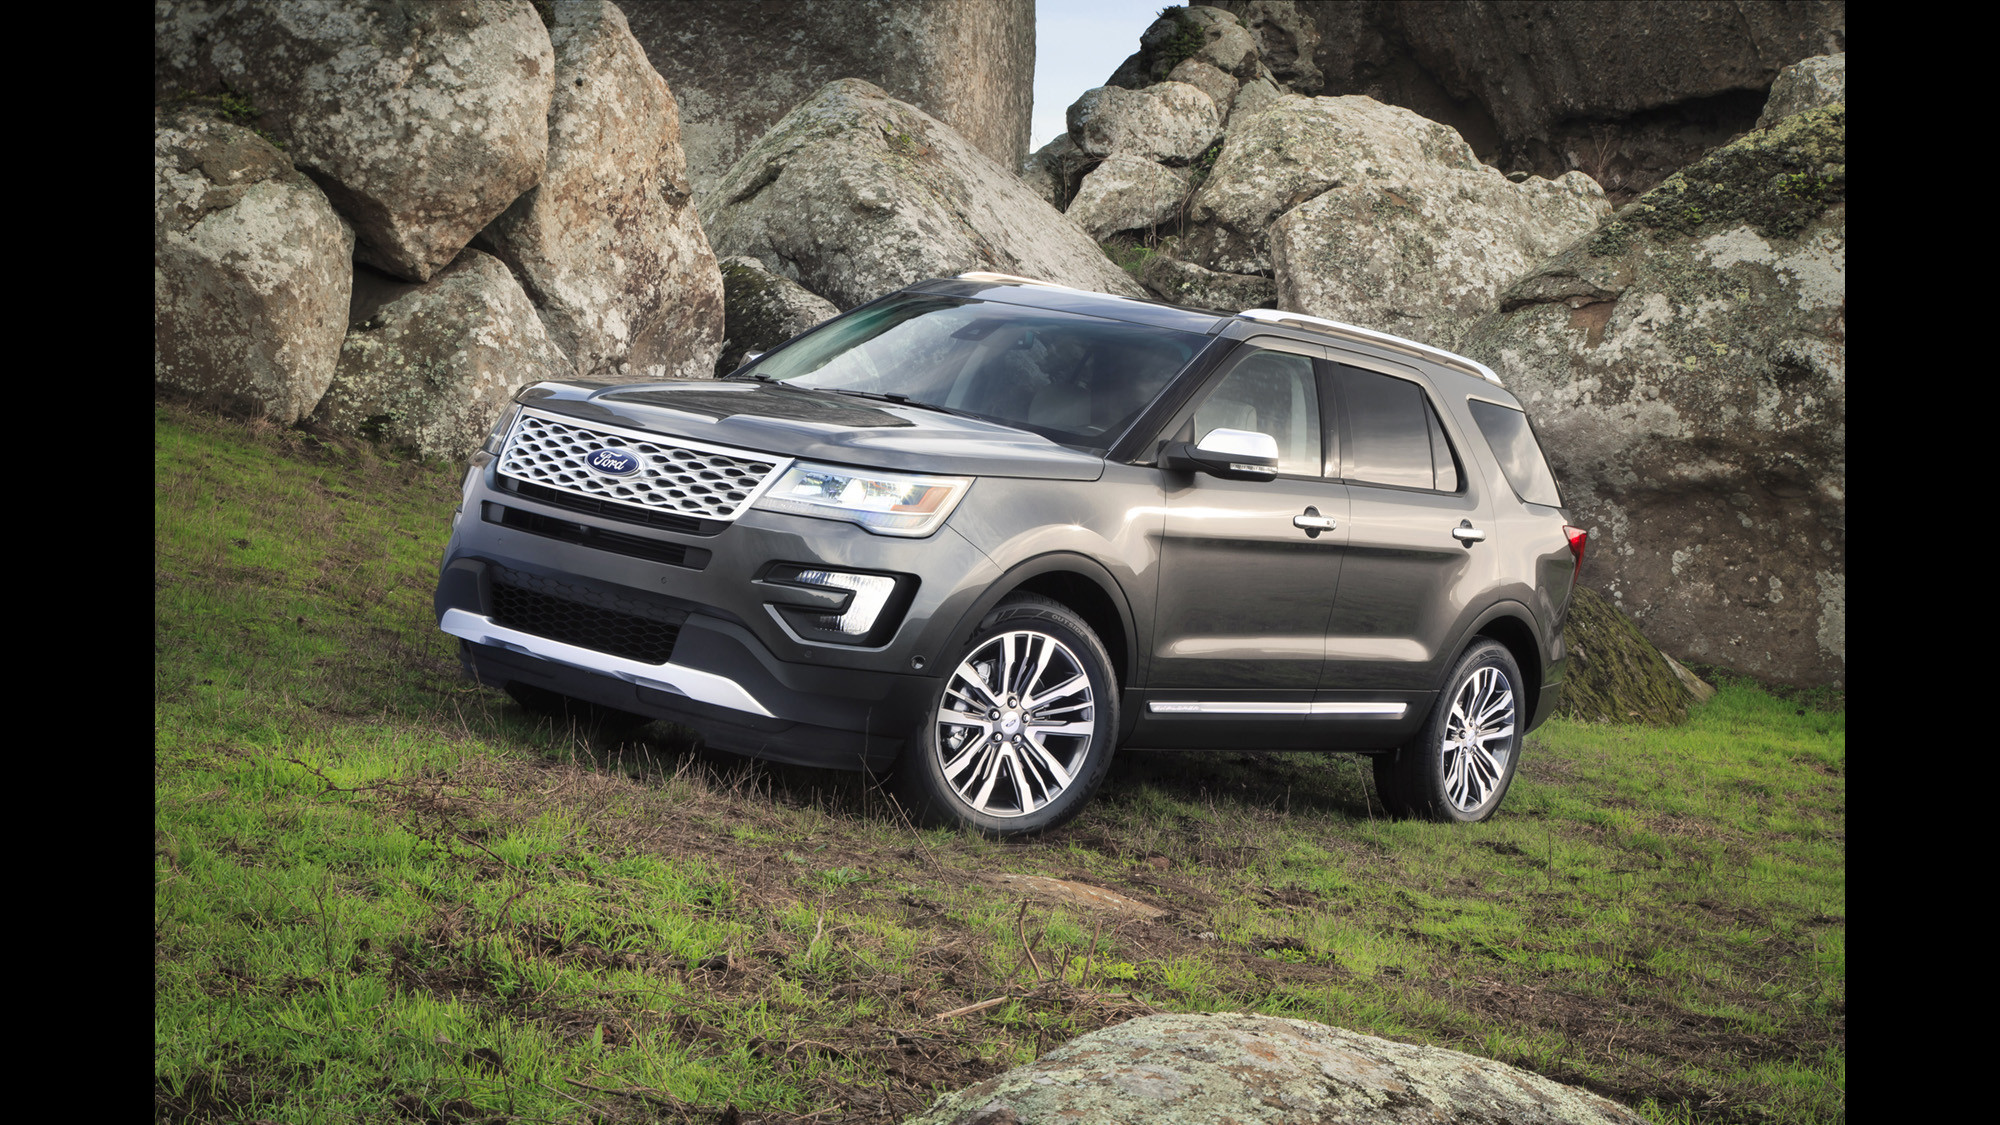 ford explorer 2016 platinum 2018 2019 2020 ford cars. Black Bedroom Furniture Sets. Home Design Ideas